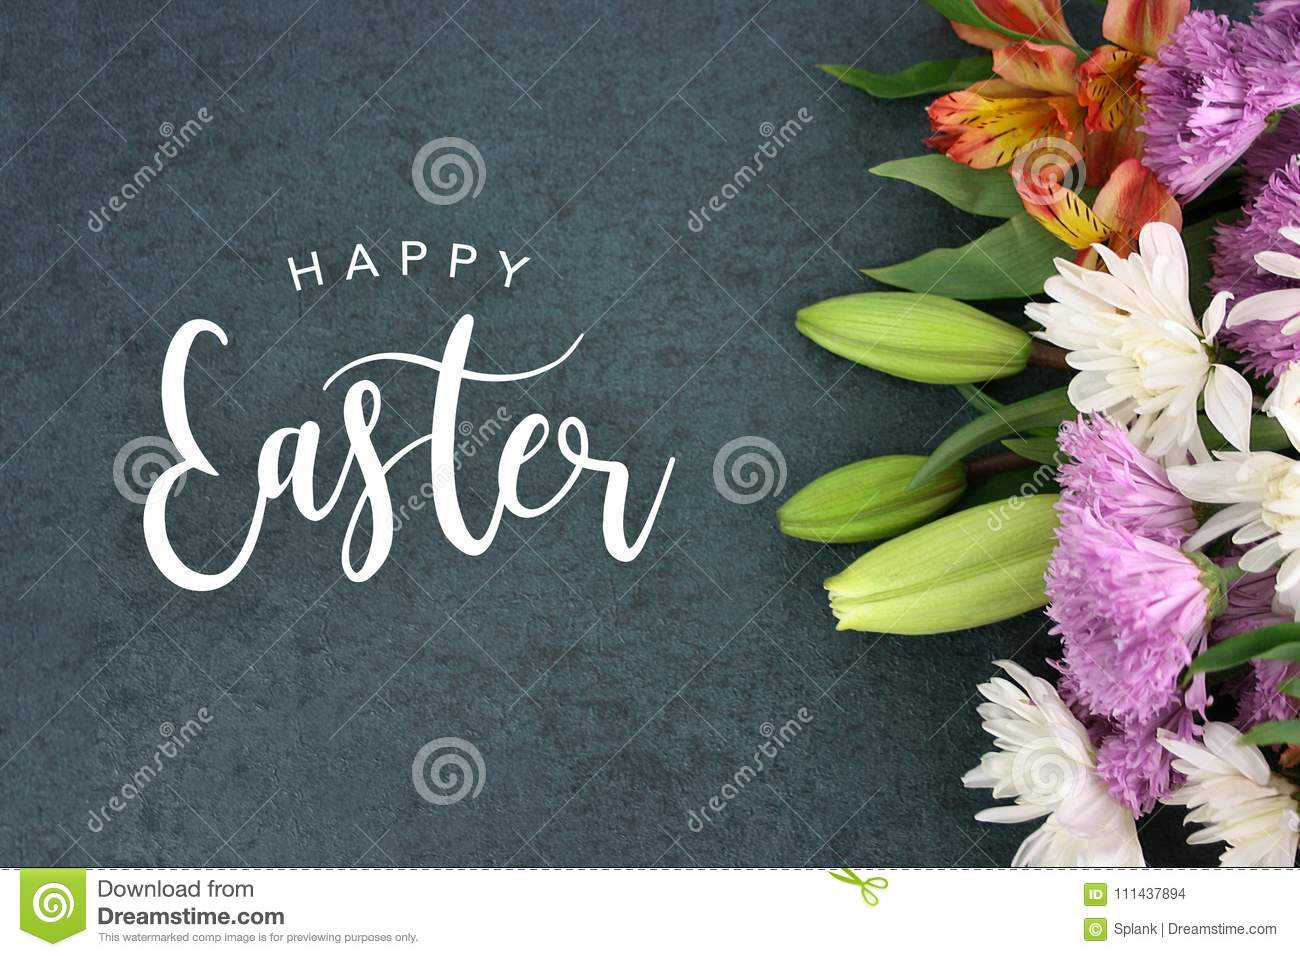 Happy Easter holiday script text over dark background texture and flowers